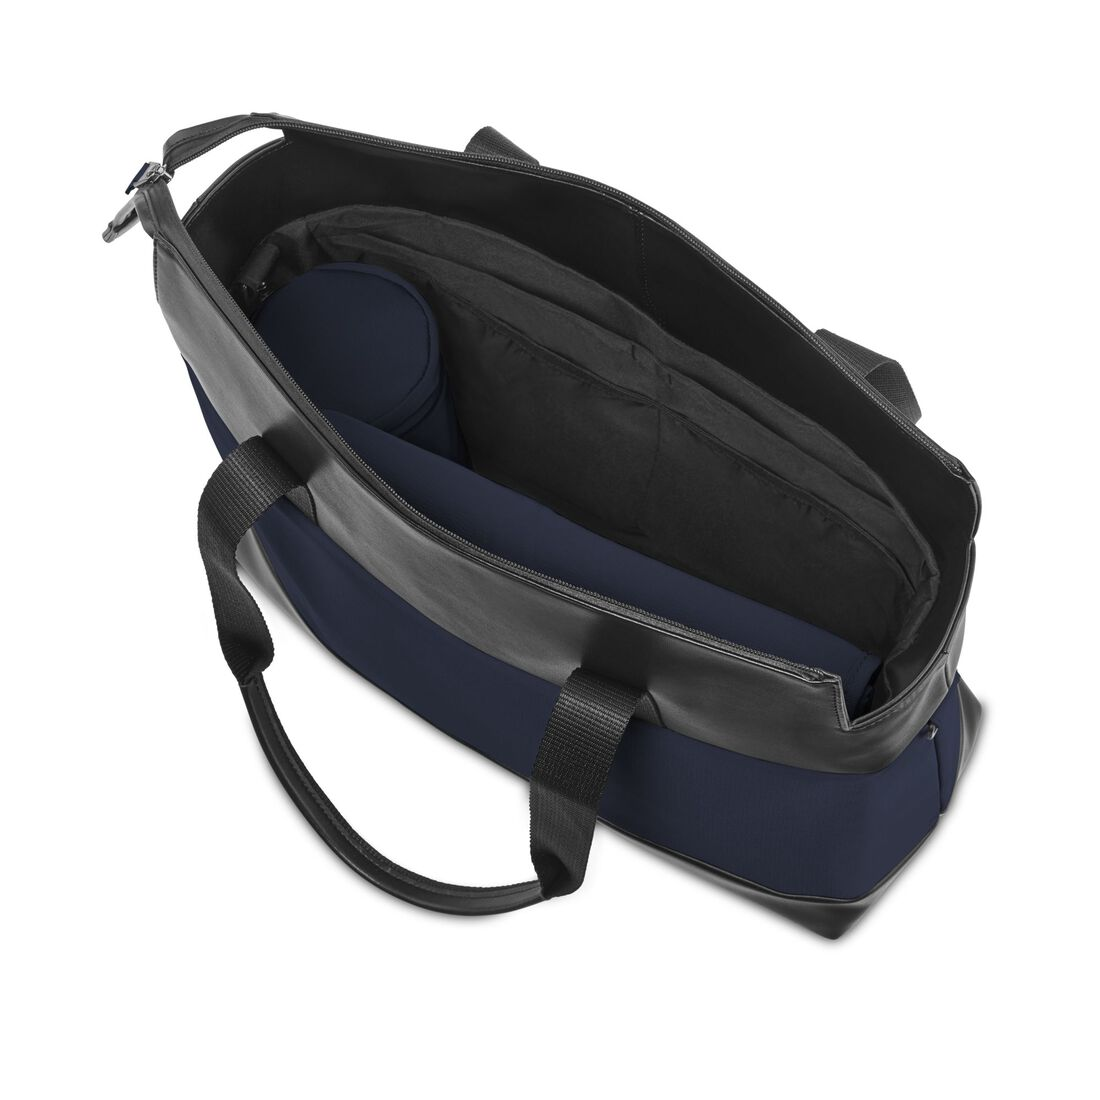 CYBEX Mios Changing Bag - Nautical Blue in Nautical Blue large image number 3